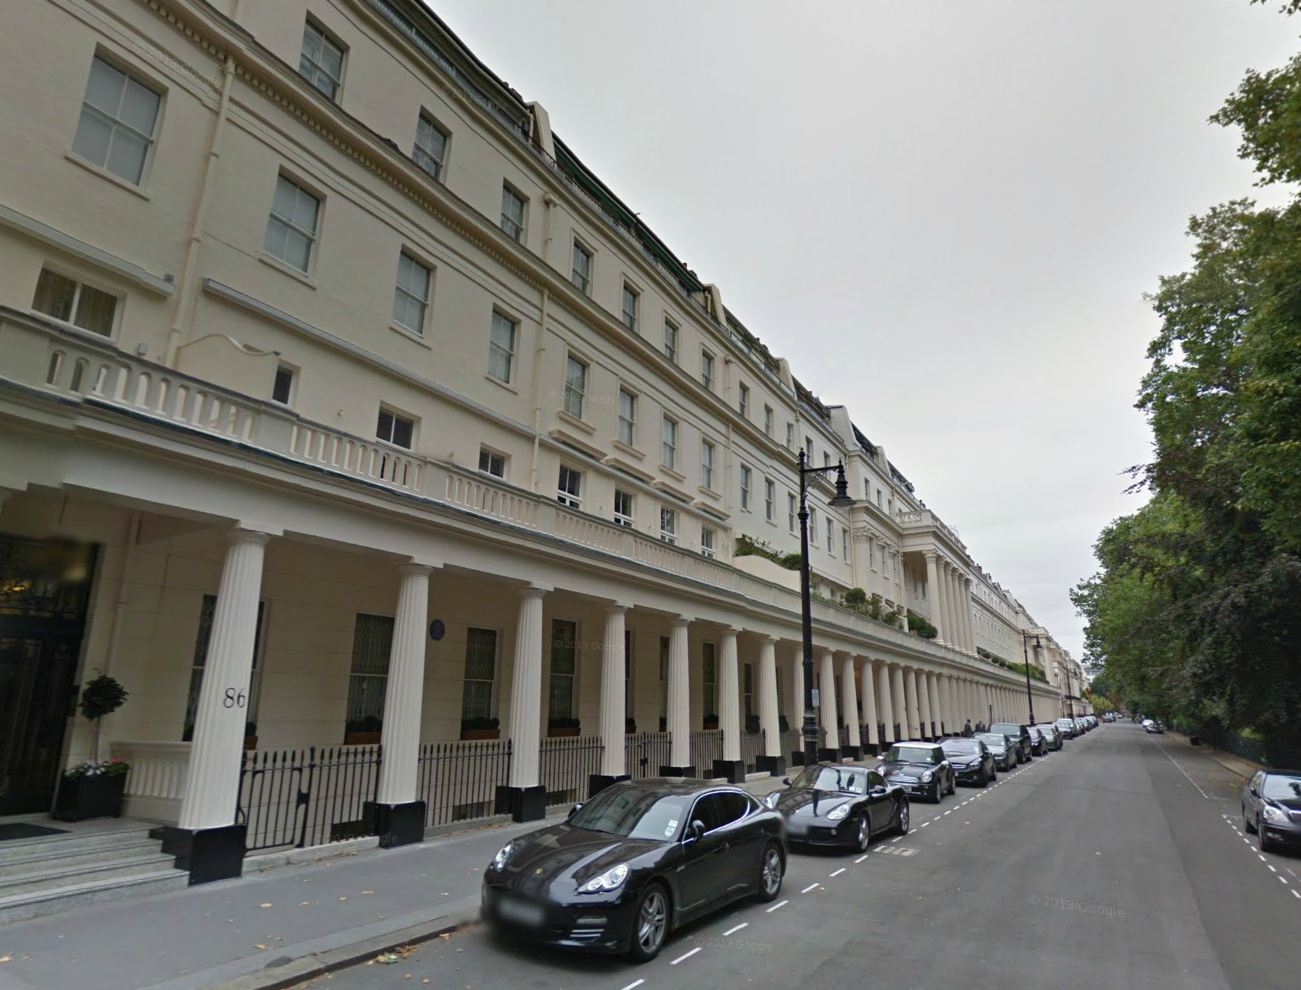 London property: Cash-rich Russian buyers widen their search from Kensington to Kensal Rise